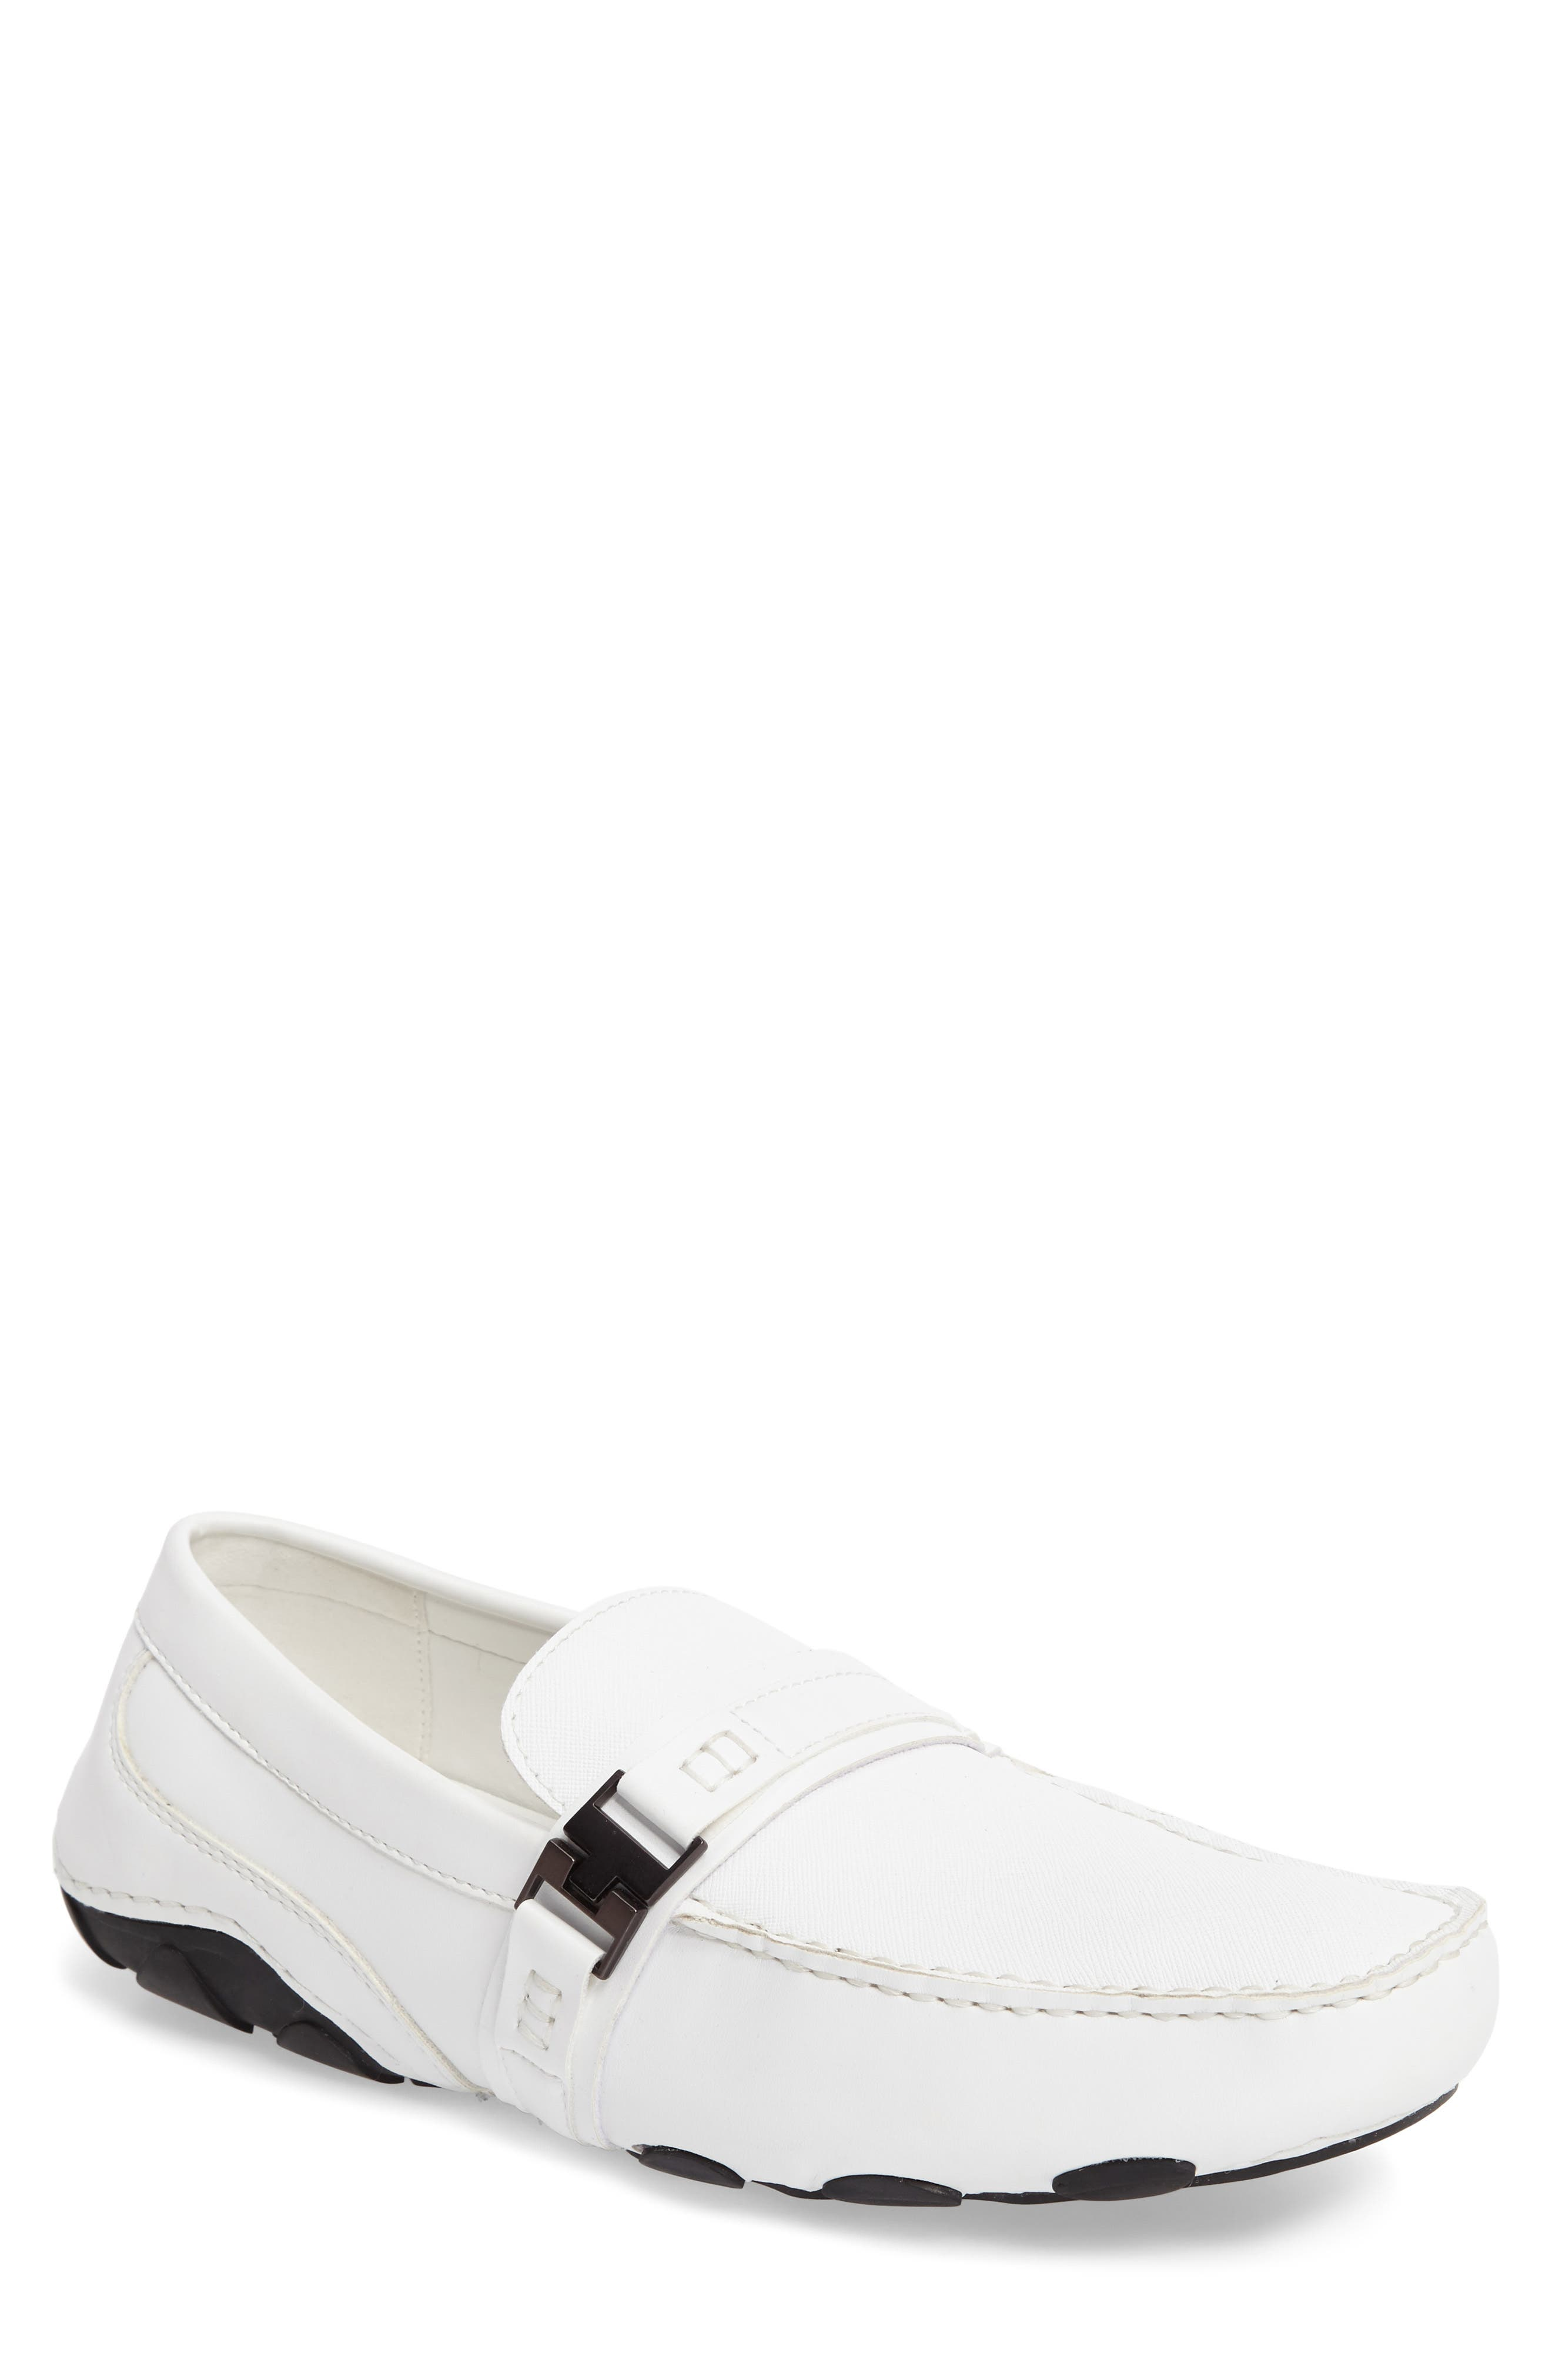 'Toast 2 Me' Driving Shoe,                         Main,                         color, White Leather